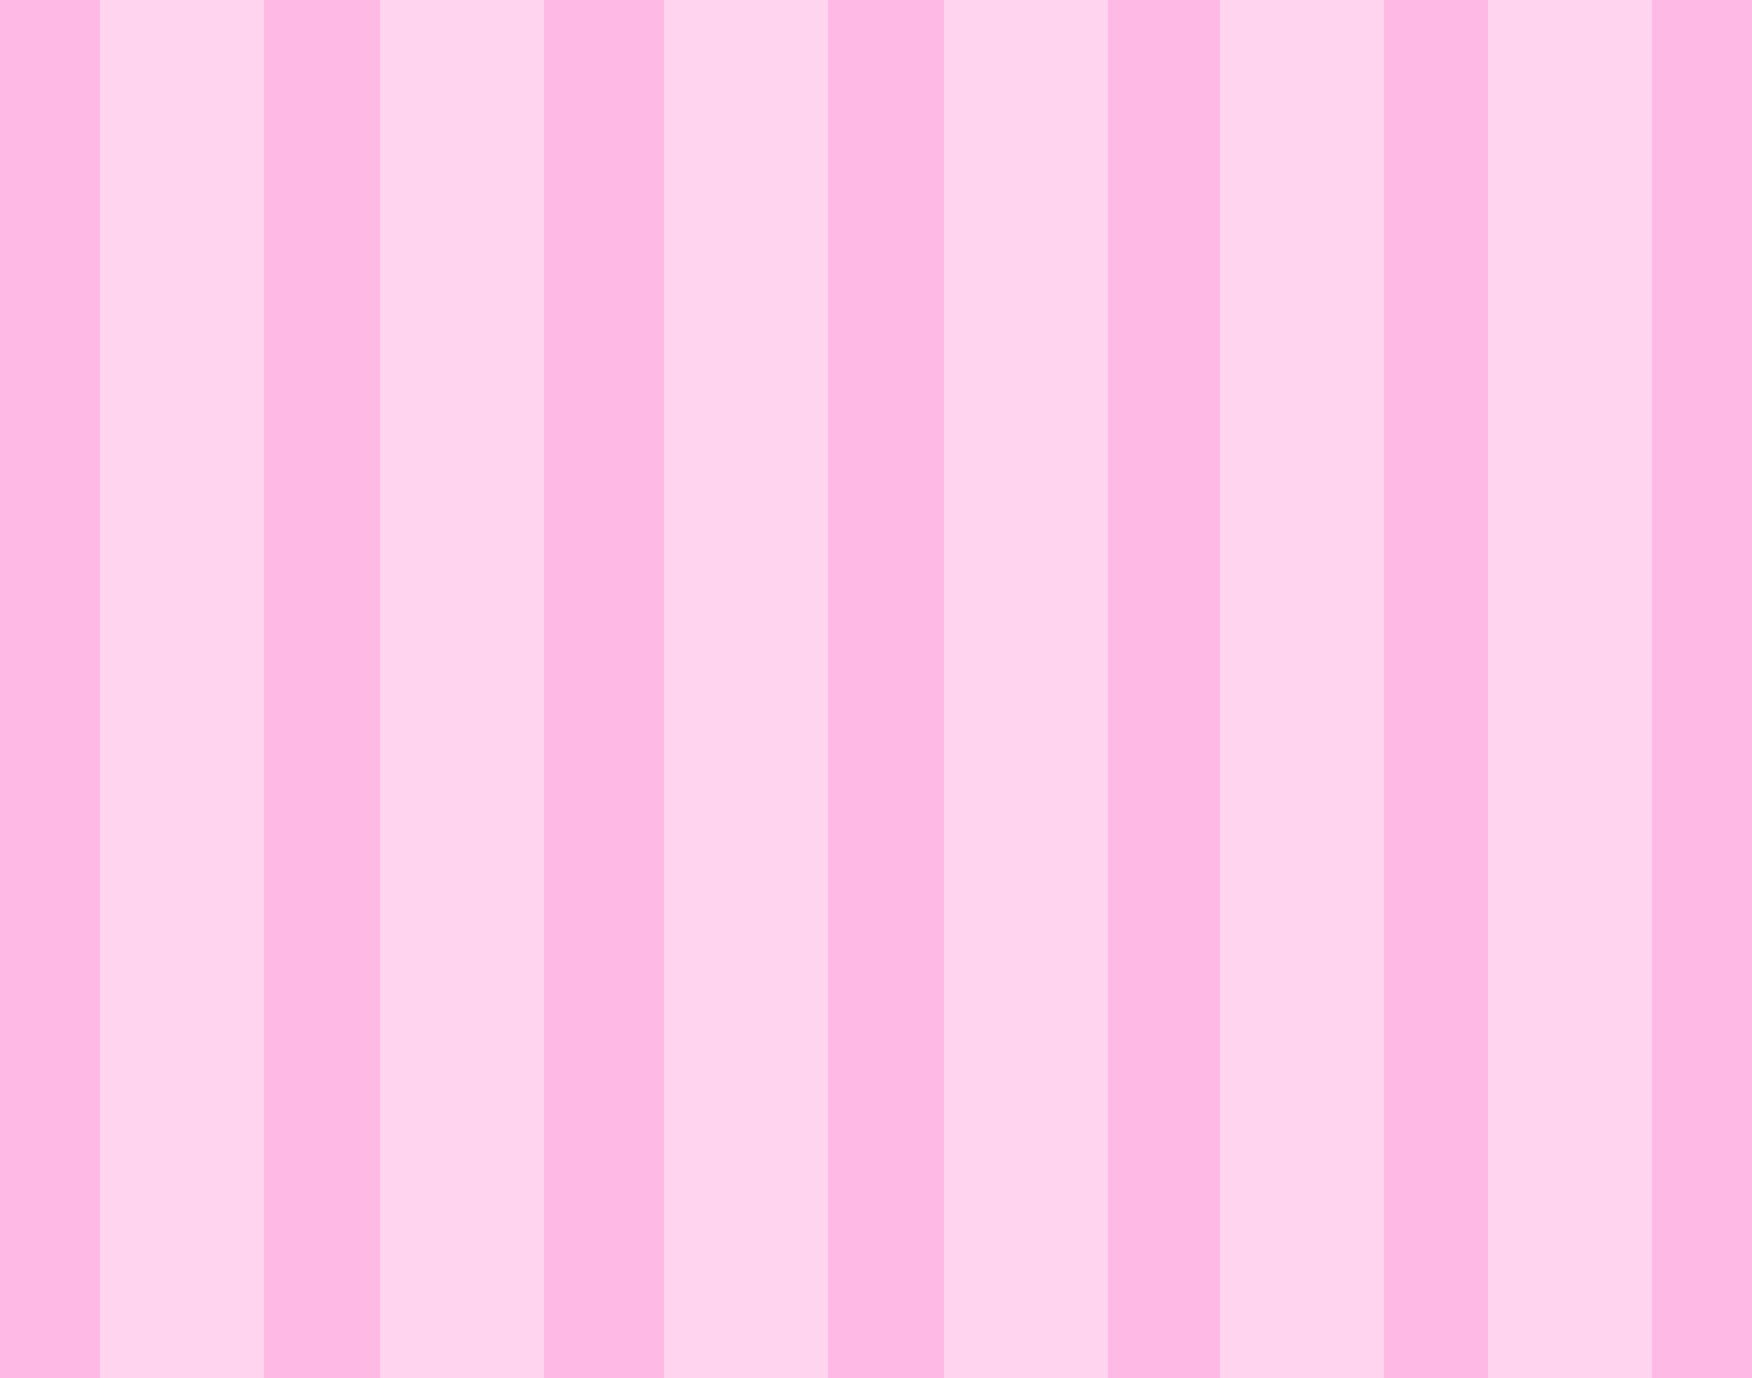 pink stripes backgrounds for powerpoint presentations pink